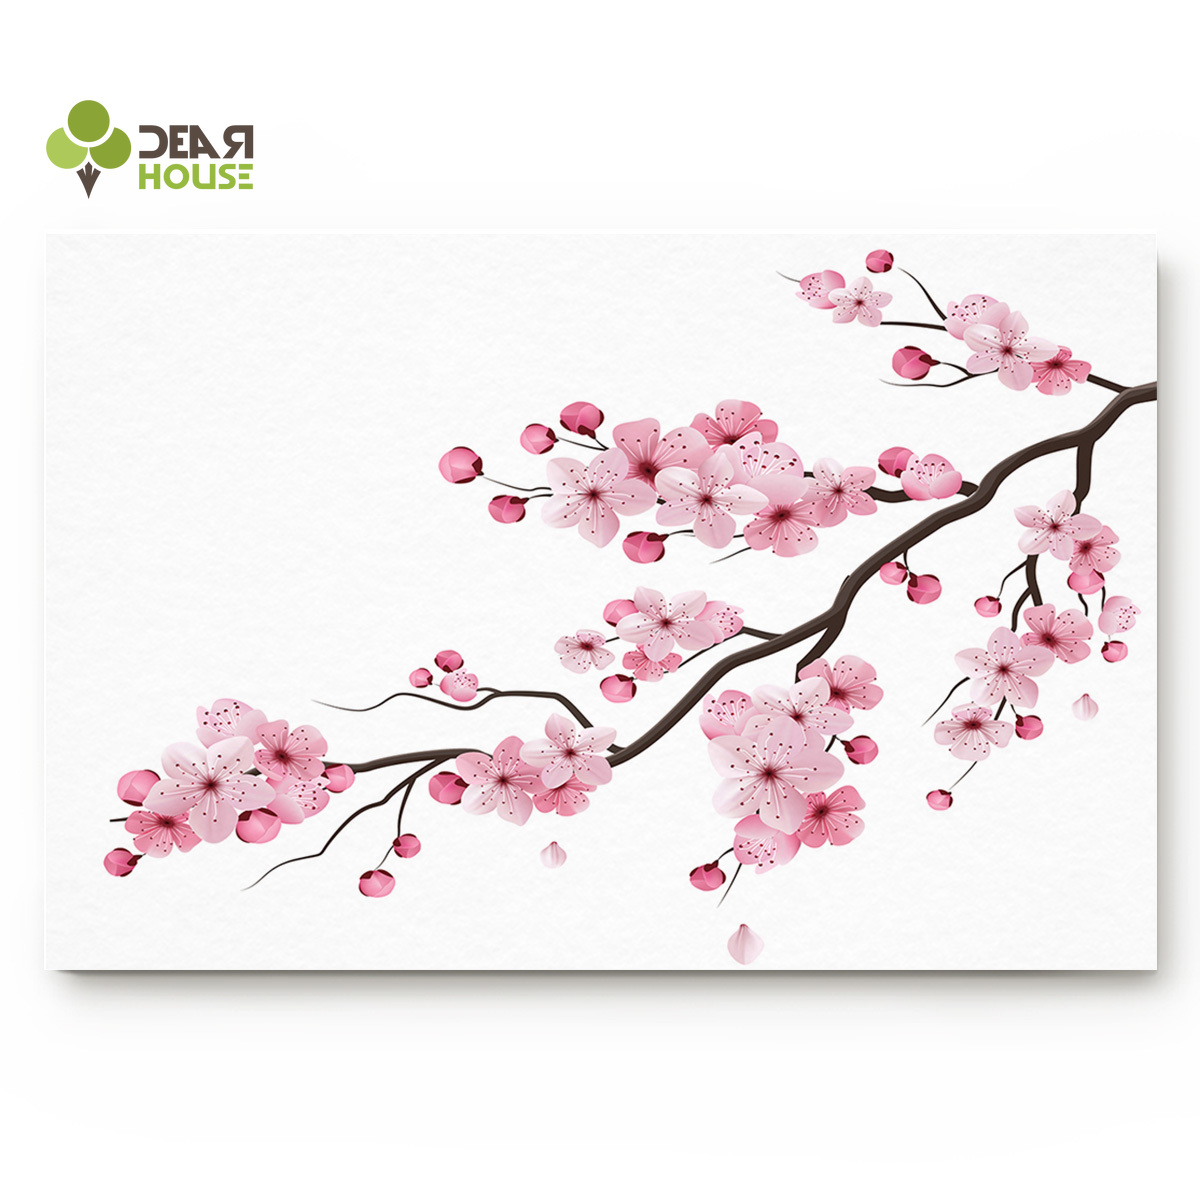 Dear House Doormat Japanese Cherry Blossom Bathroom Mat Outside Waterproof Shoes Scraper Entryway Rug Home image